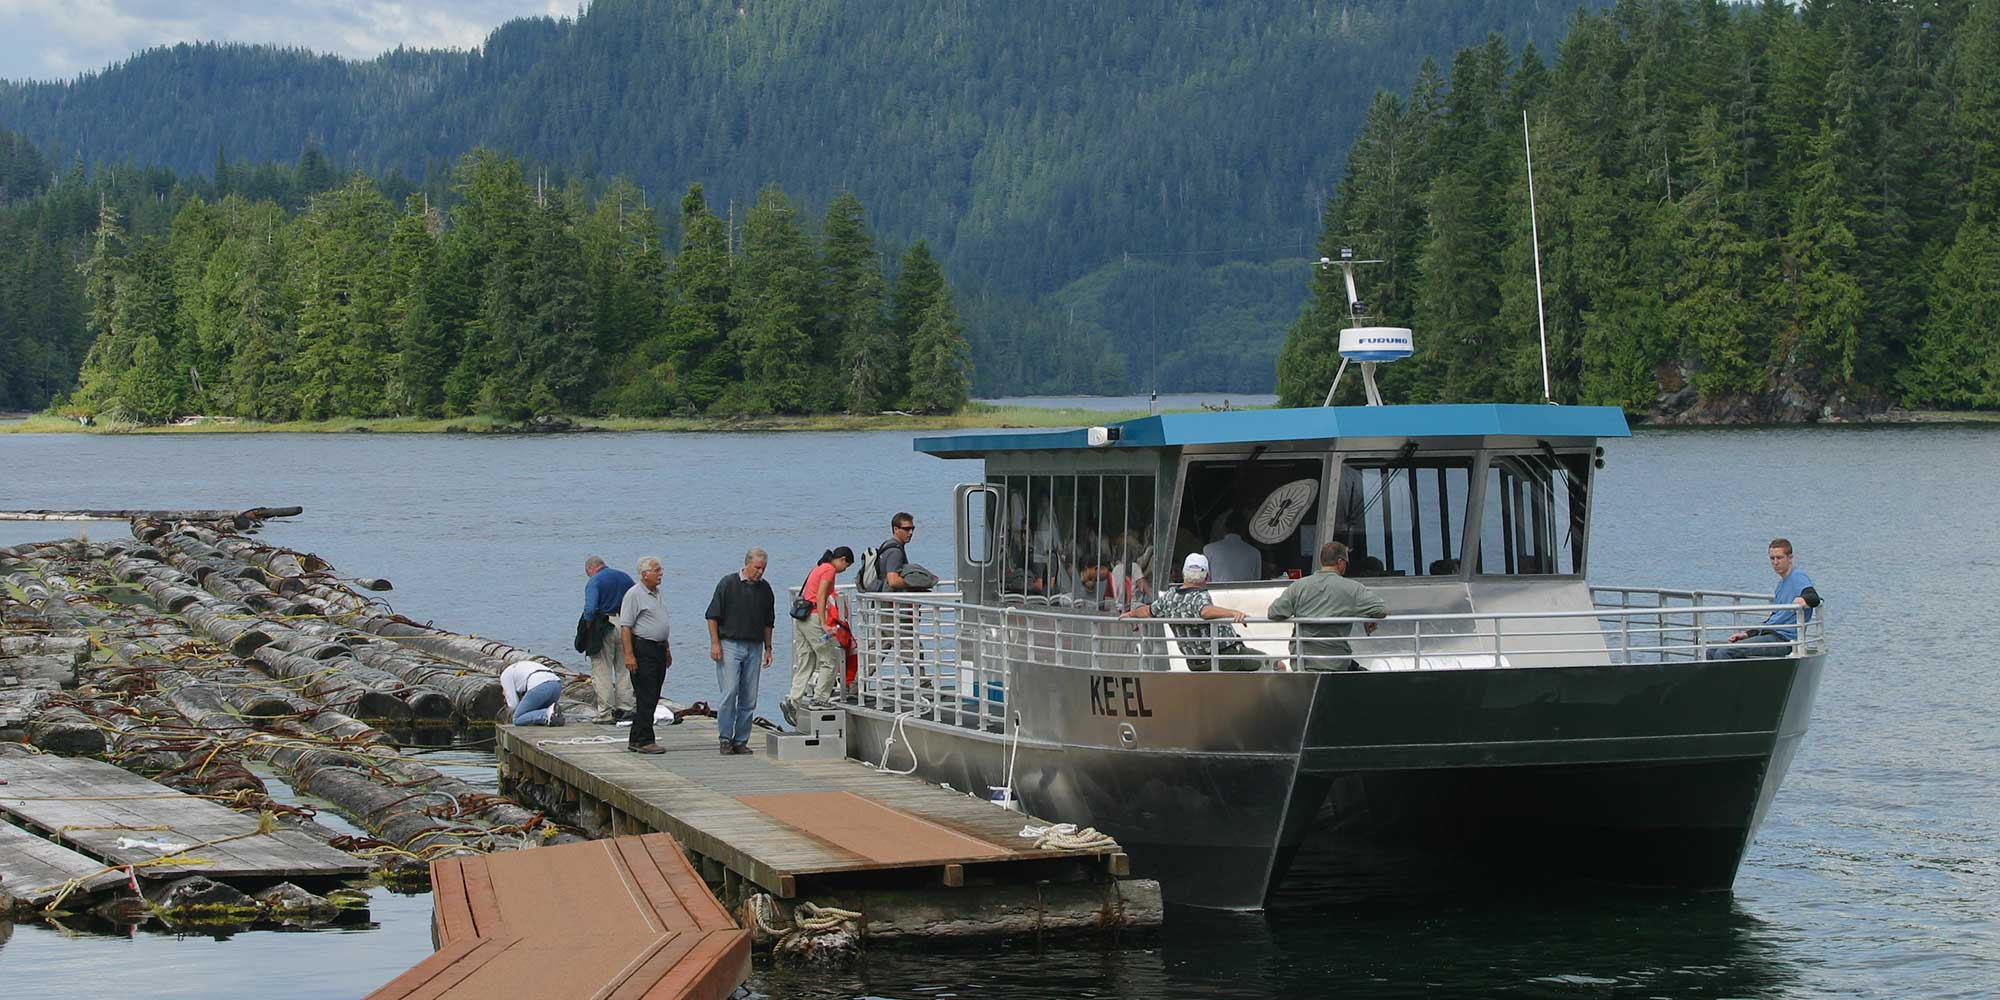 passengers boarding a tour boat